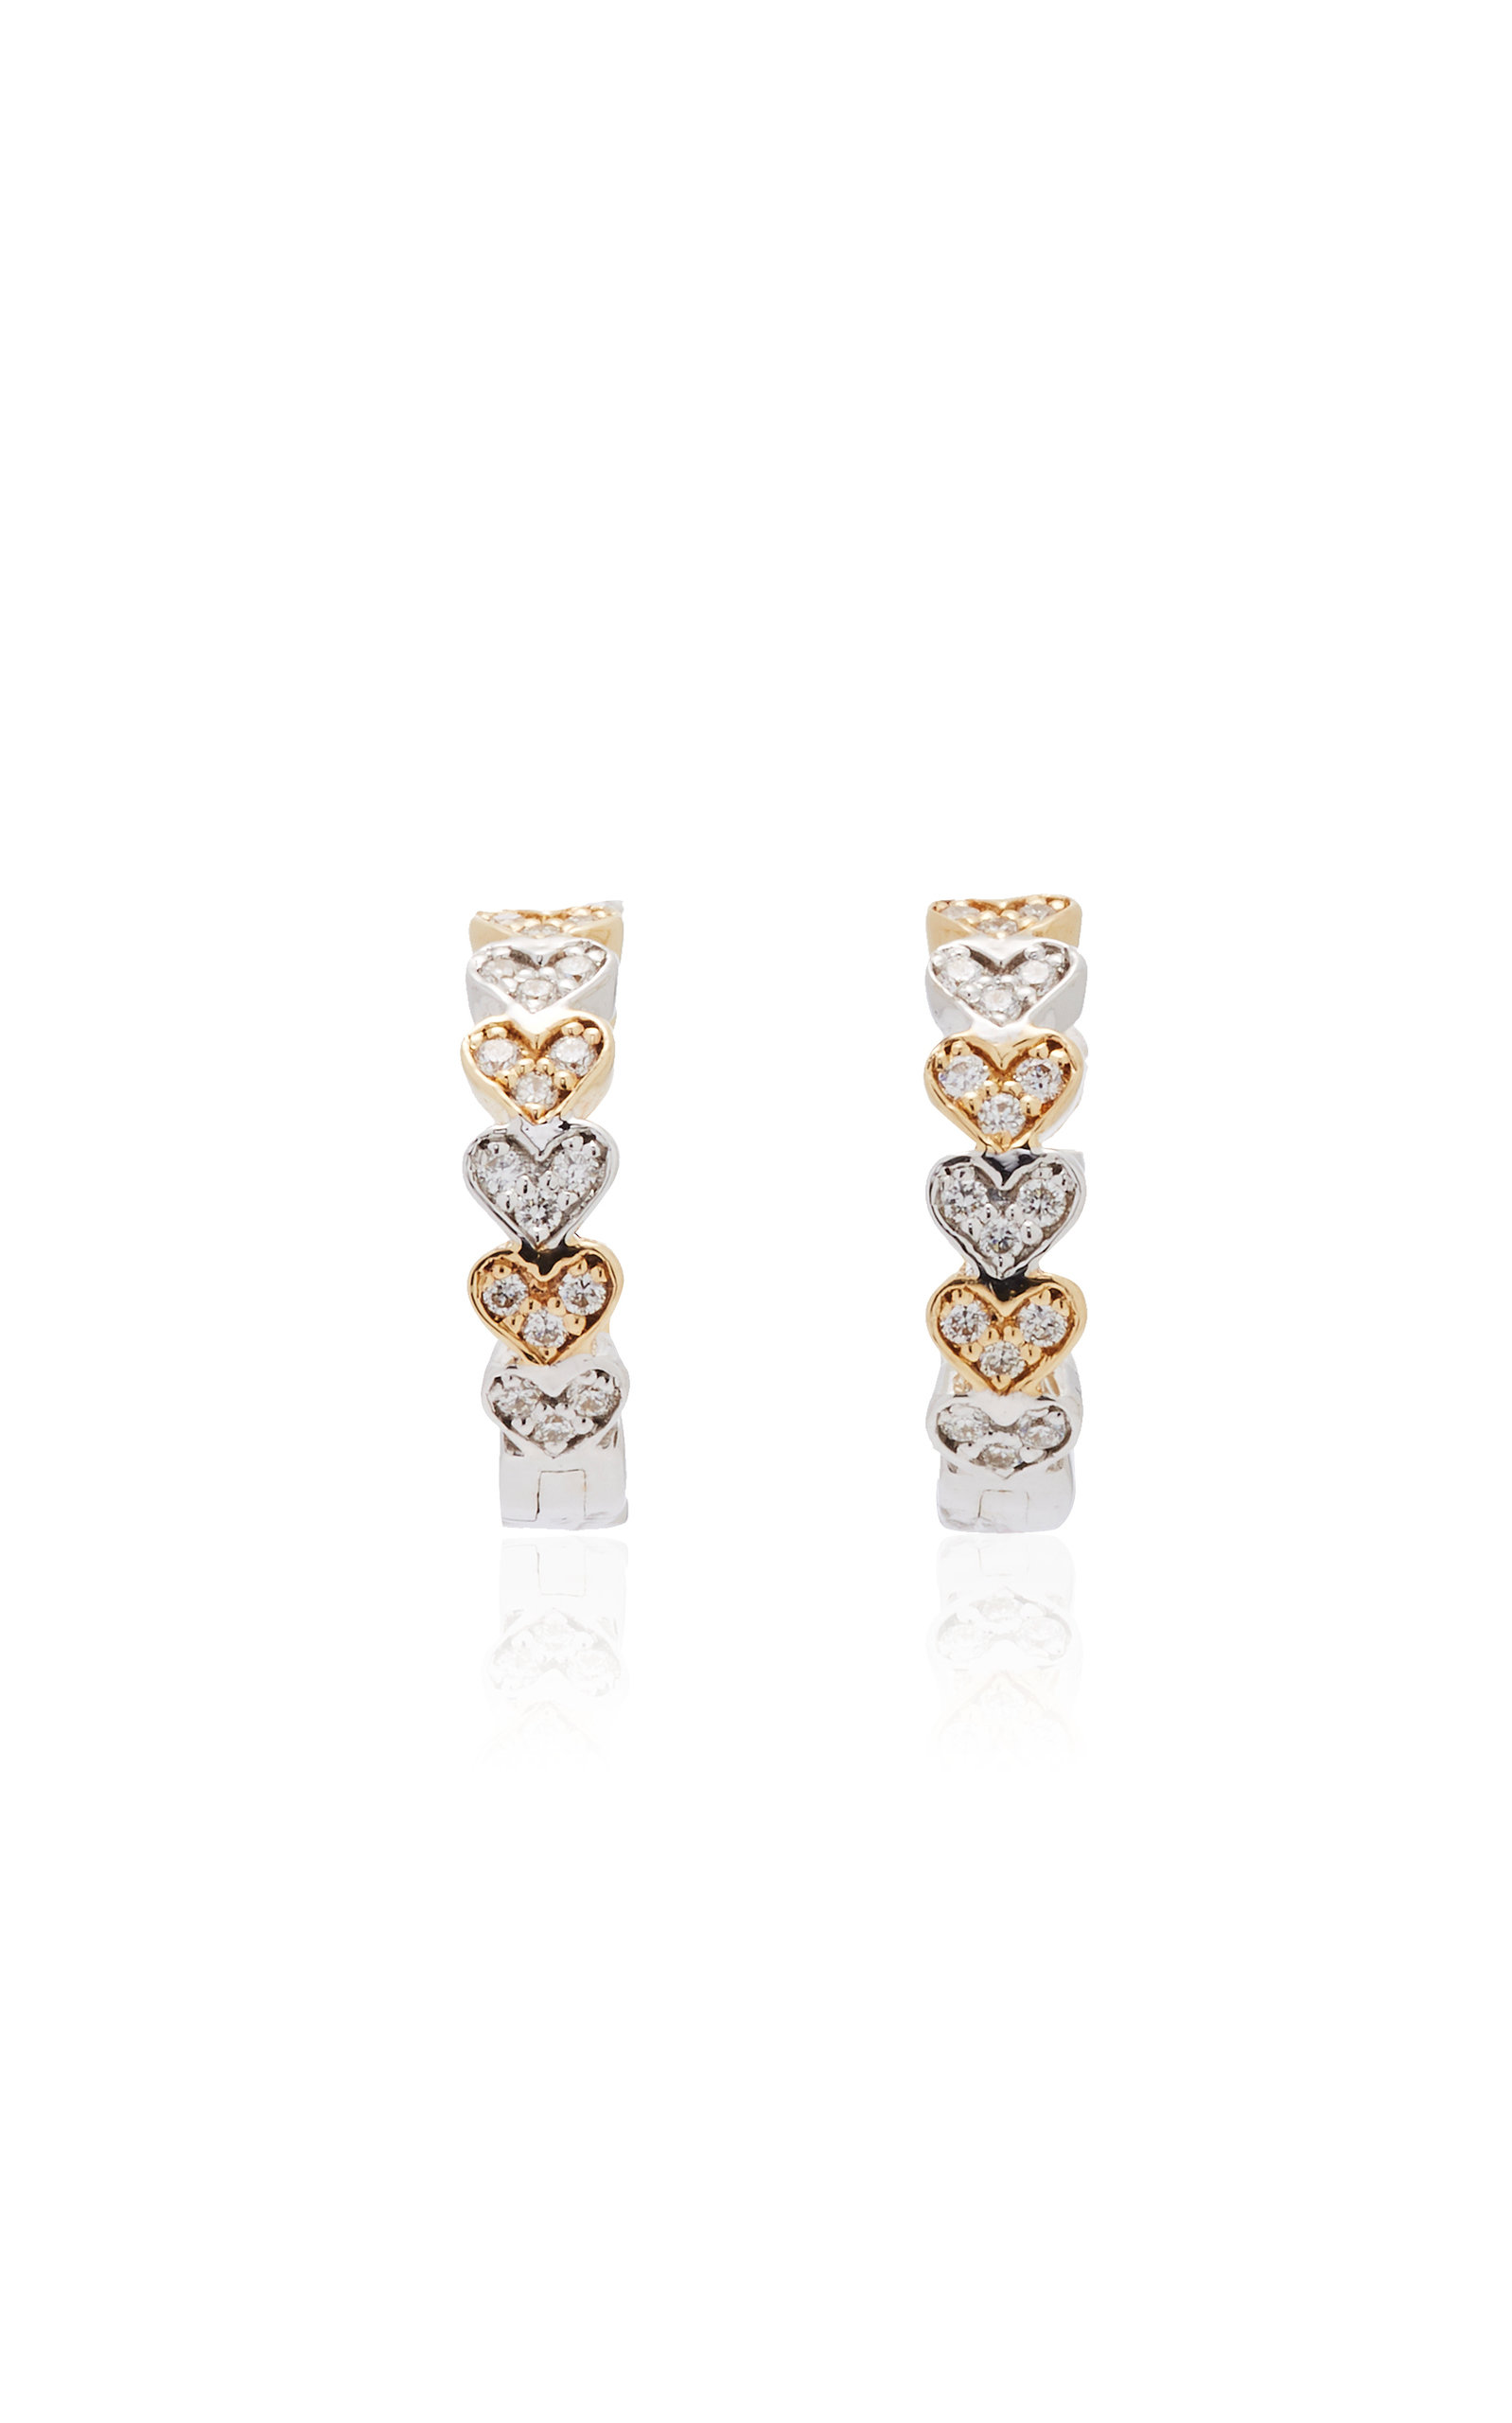 14 K Yellow Gold Heart Huggie Hoops by Sydney Evan